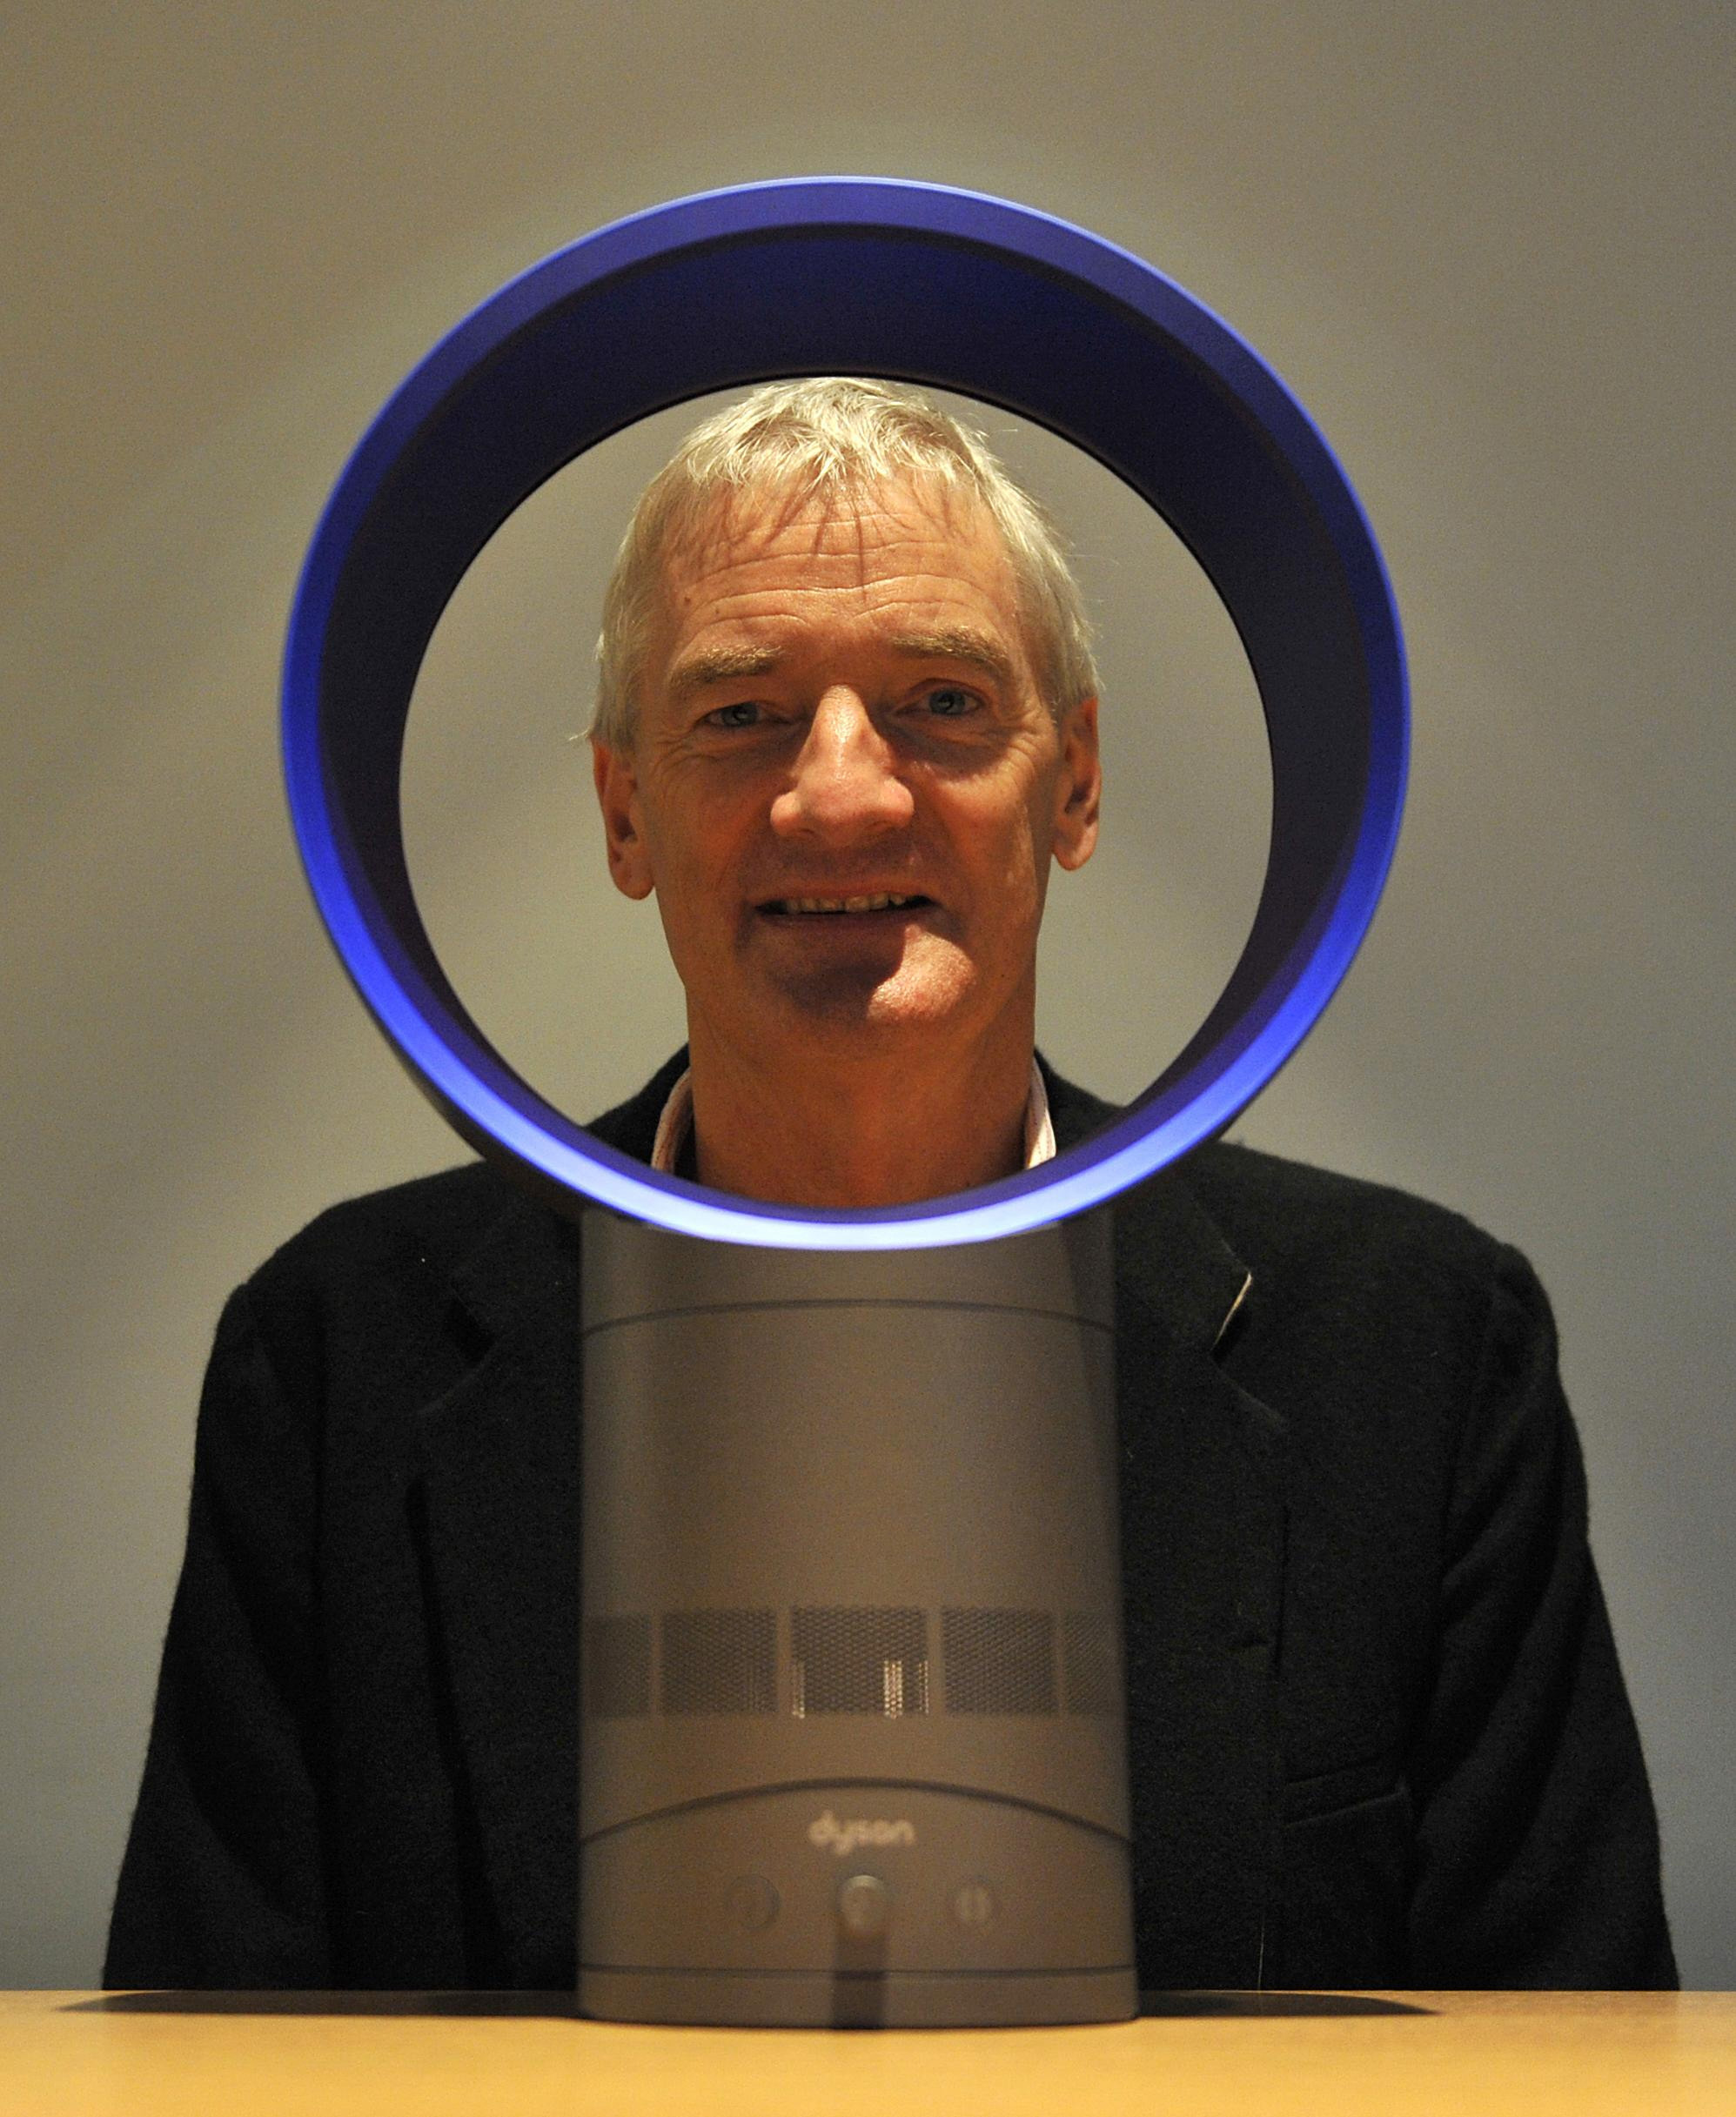 Inventor James Dyson today launched a bladeless fan which he hopes will be a healthy and environmentally-friendly alternative to air conditioning.